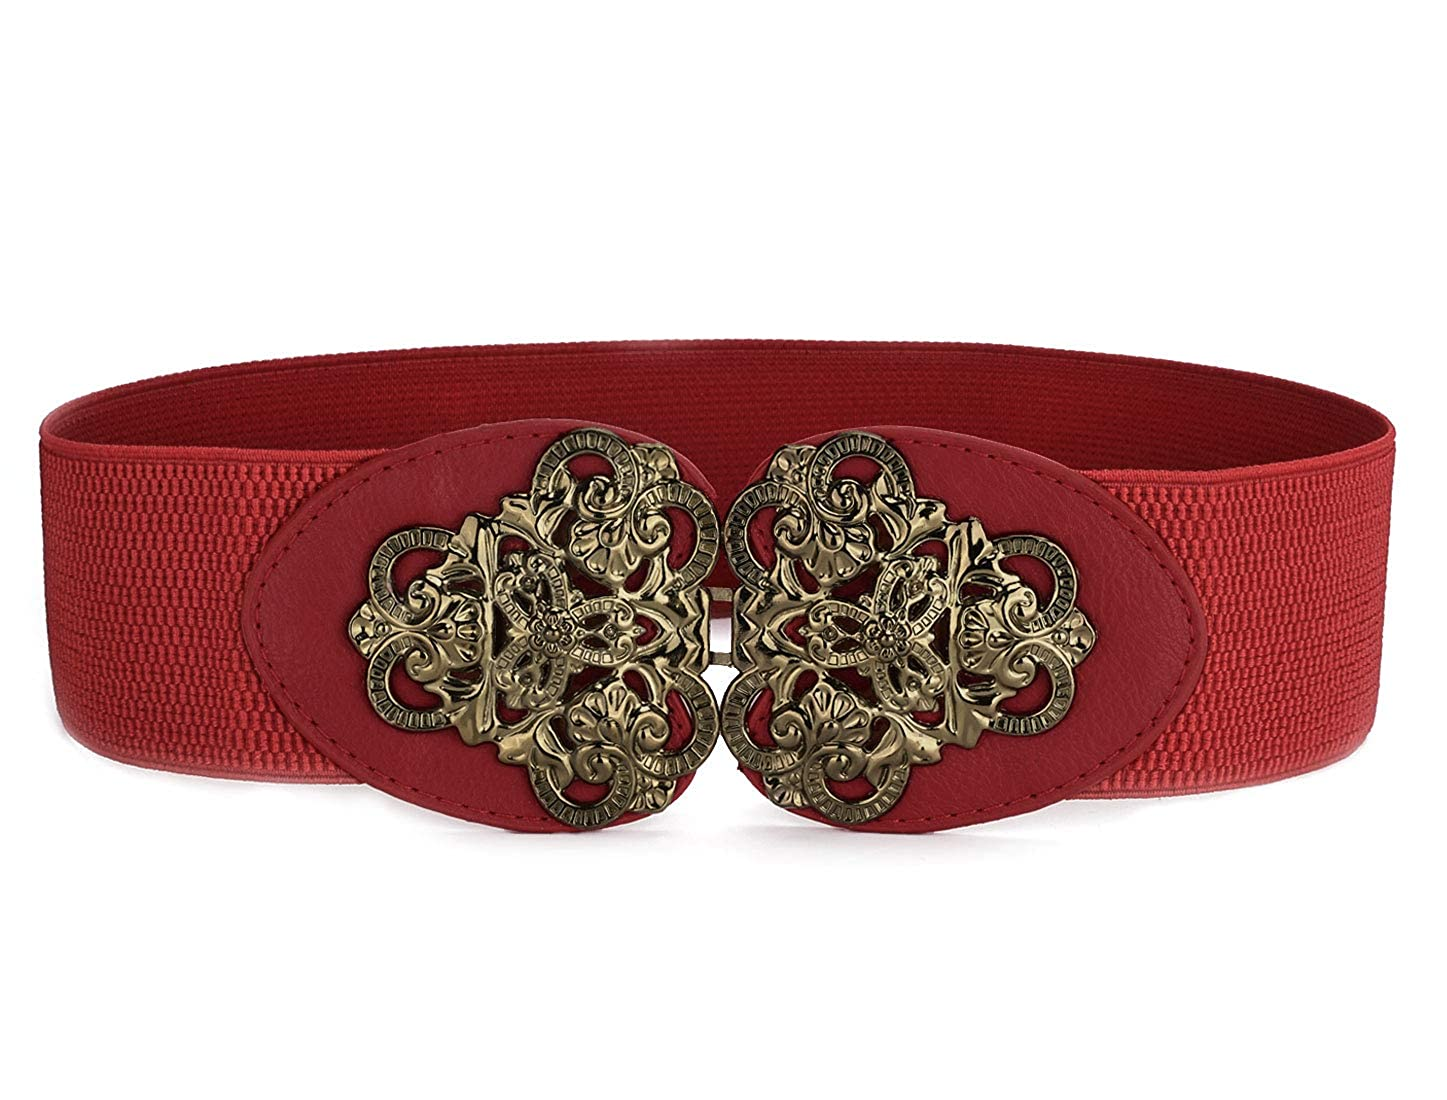 Single Pin Metal Buckle Red Women Rubber Stretch Belt X-Large 6 COLORS CHOOSE